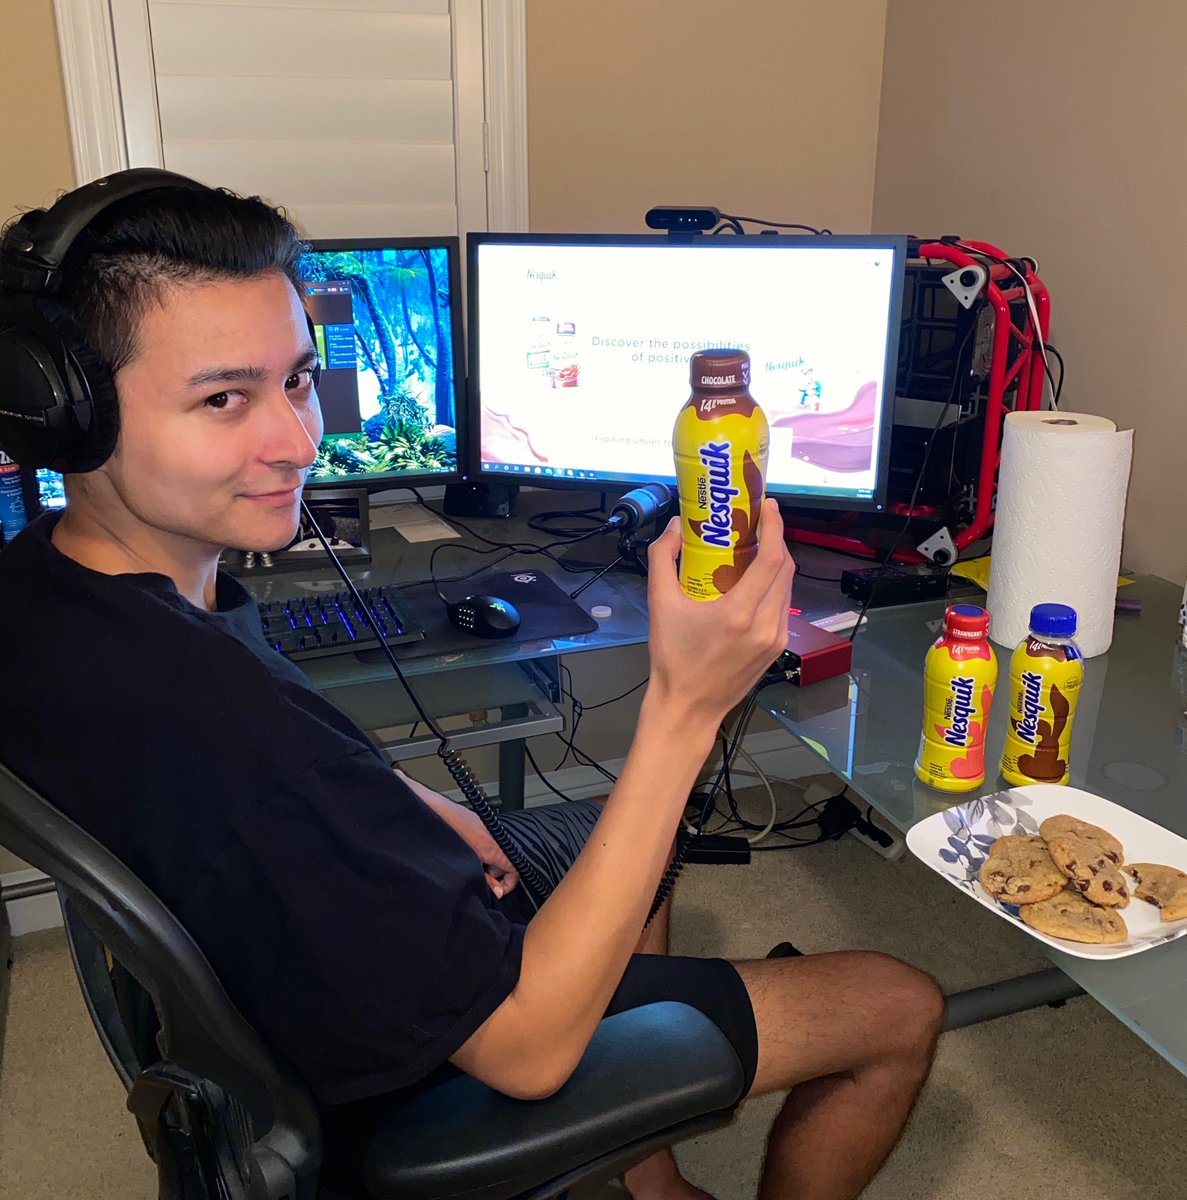 Nothing better than refueling with @Nesquik after an awesome day of gaming! Click on the link to grab your own bottle of chocolatey goodness! Bit.ly/PikaNQTW #Keeponchuggin #Sponsored